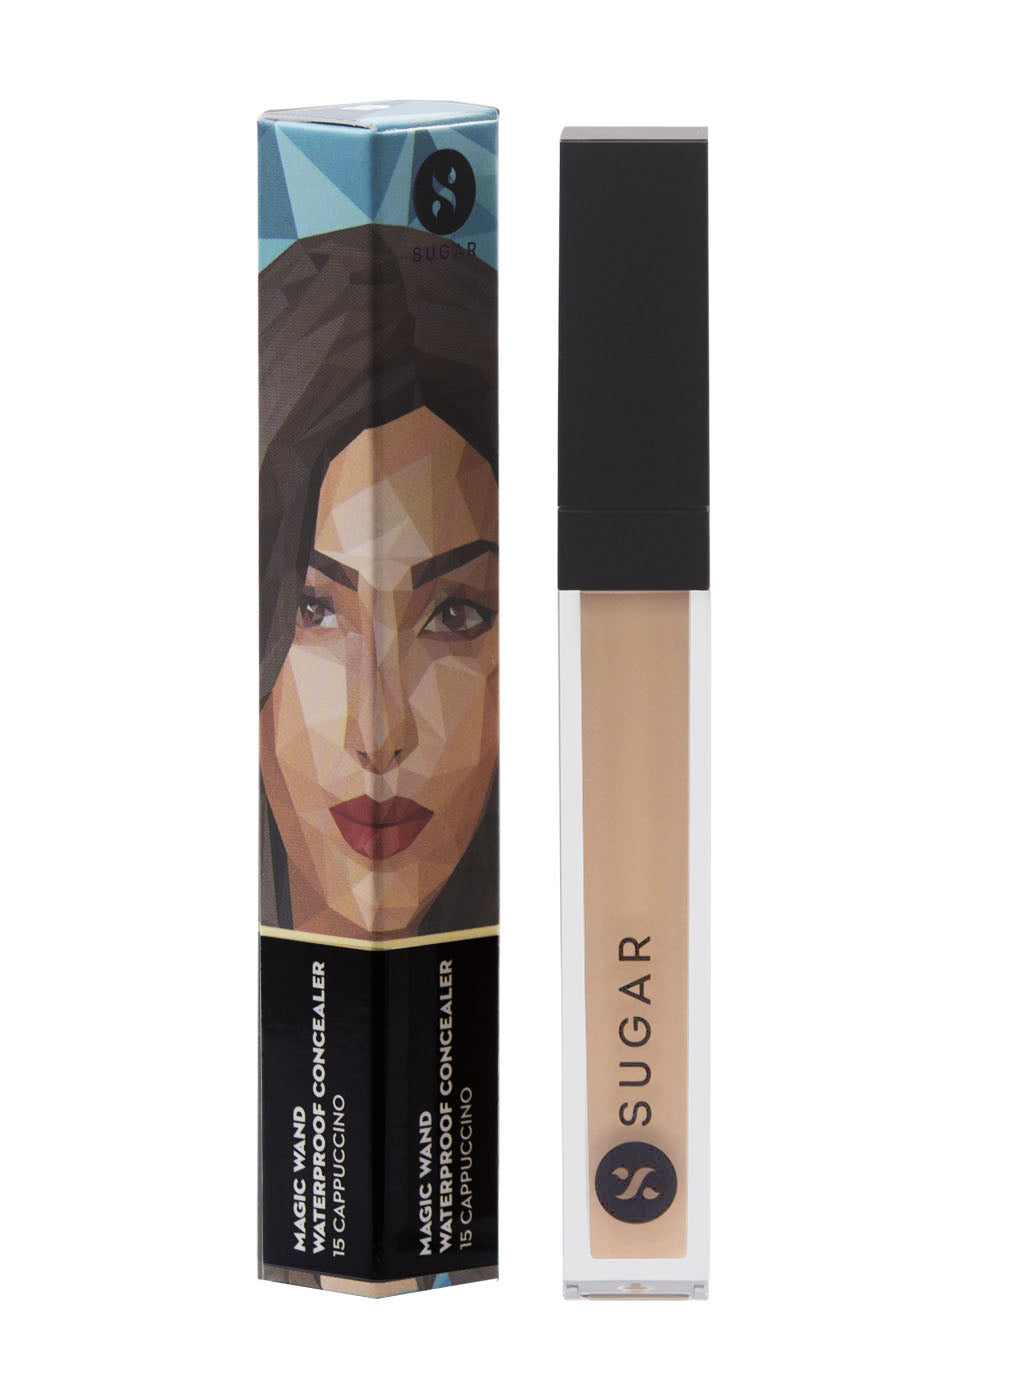 SUGAR Magic Wand Waterproof Concealer - 15 Cappuccino (Light, Cool Undertone)